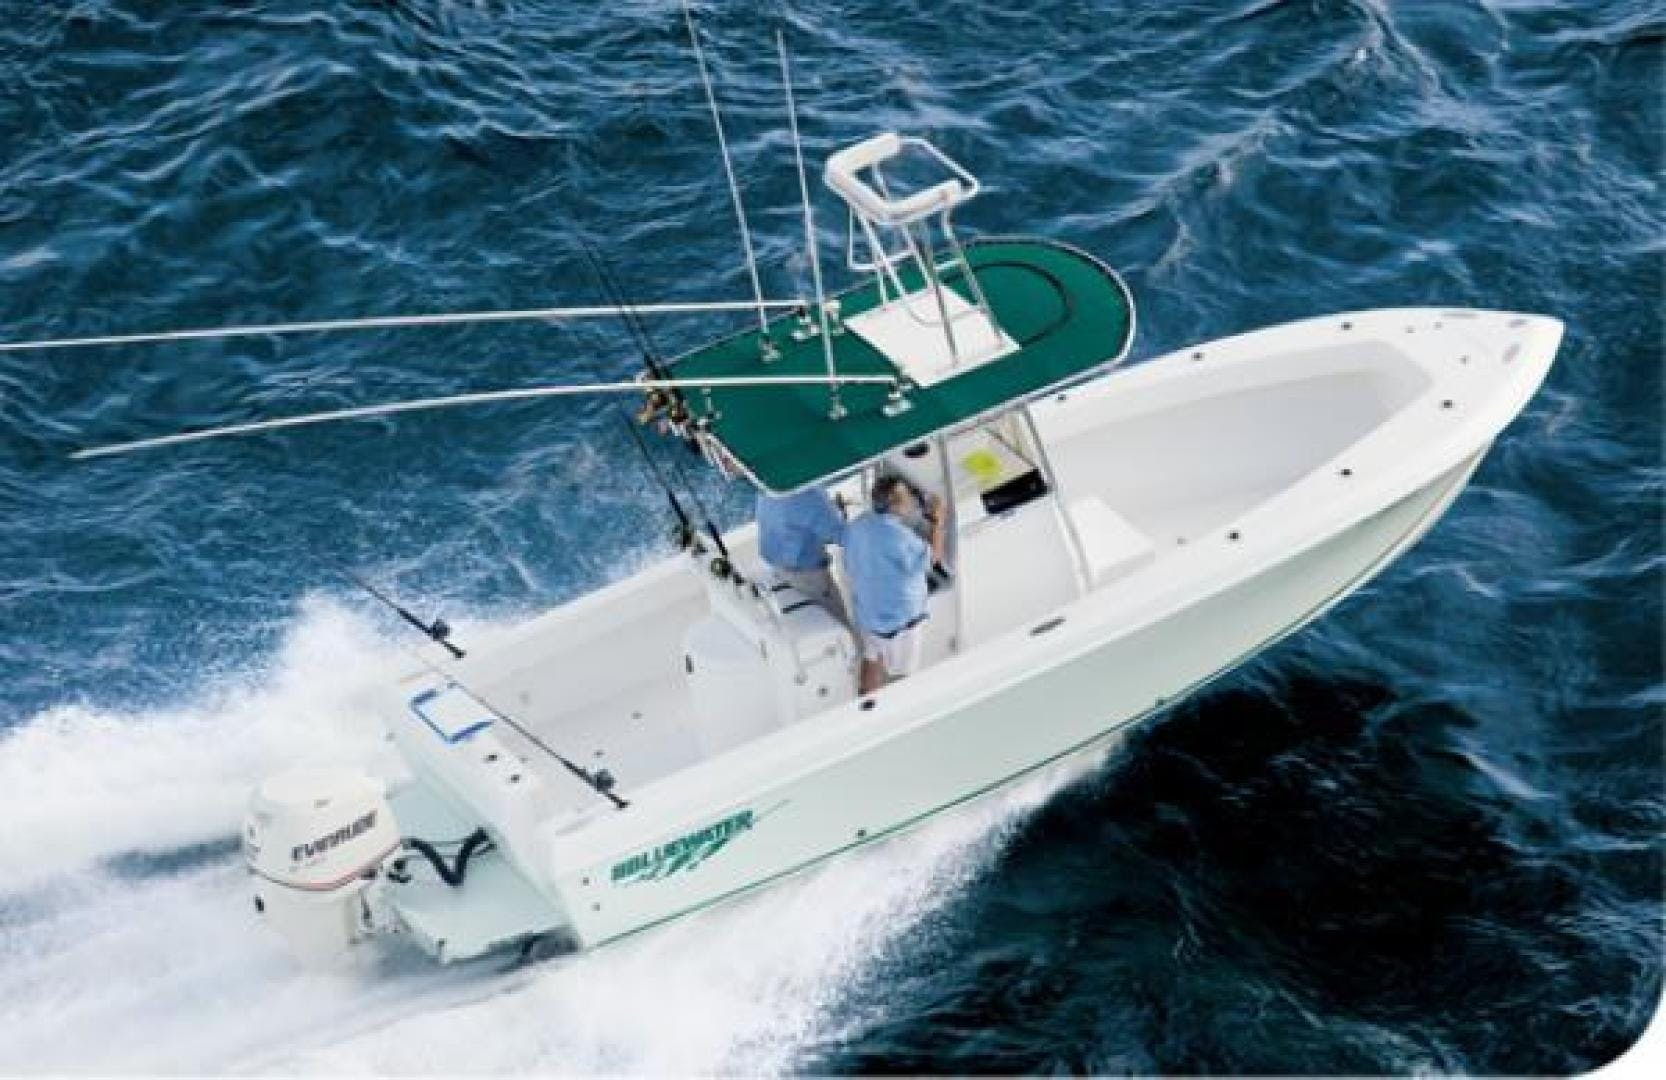 2020 Bluewater Sportfishing 22' 23t Bluewater Sportfishing 23t | Picture 3 of 7